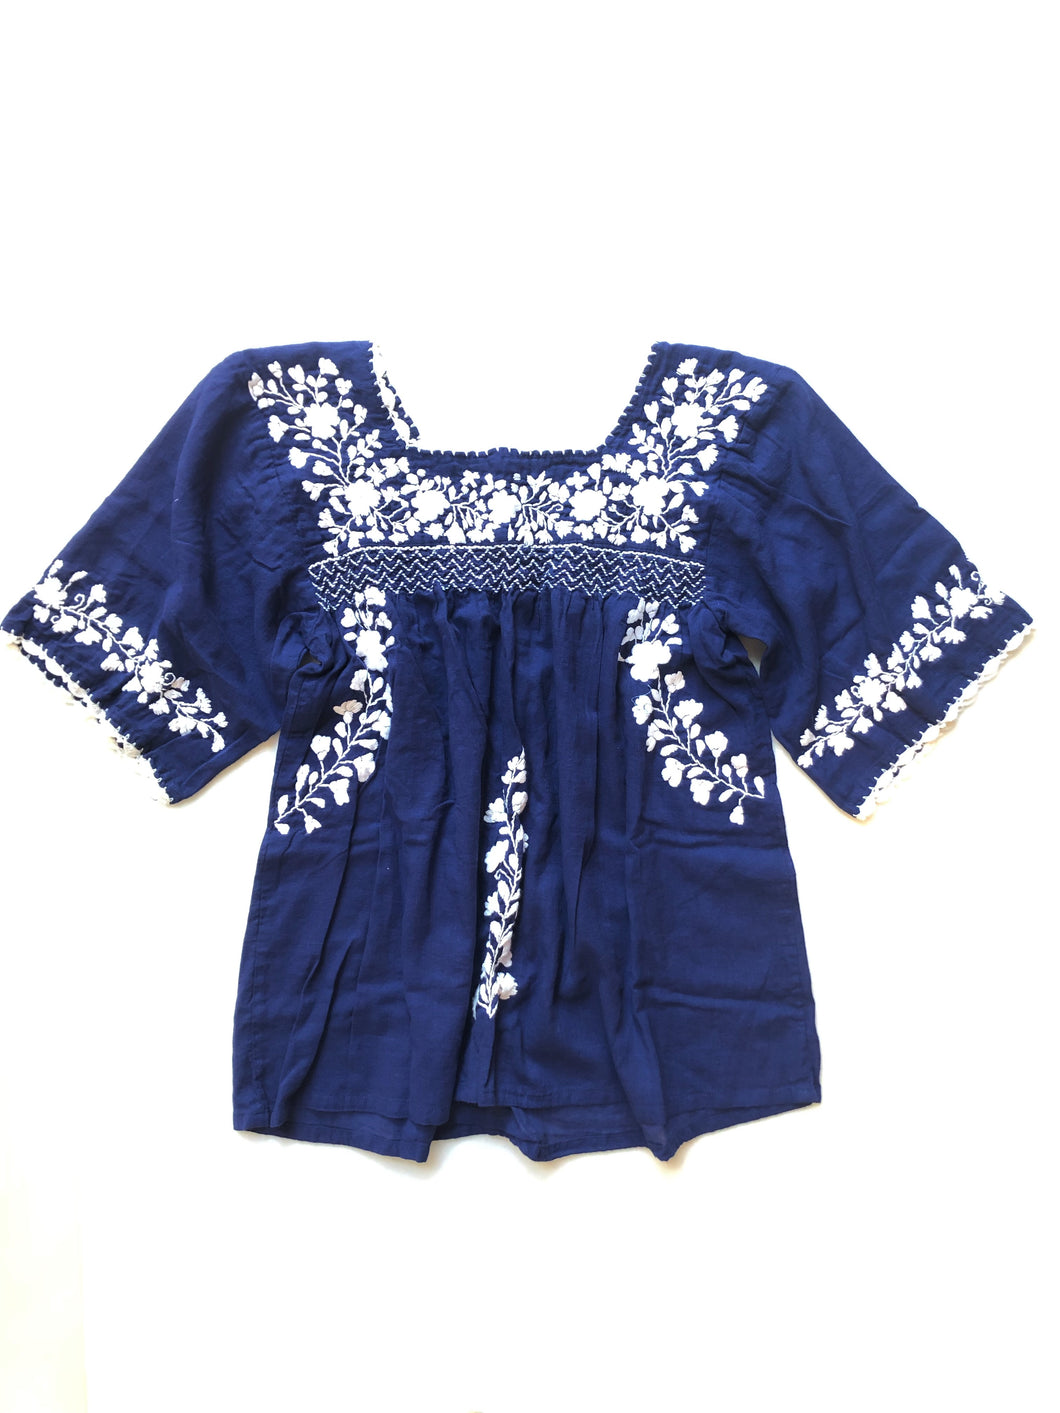 Oaxaca - Bell Sleeve (Blue with White)